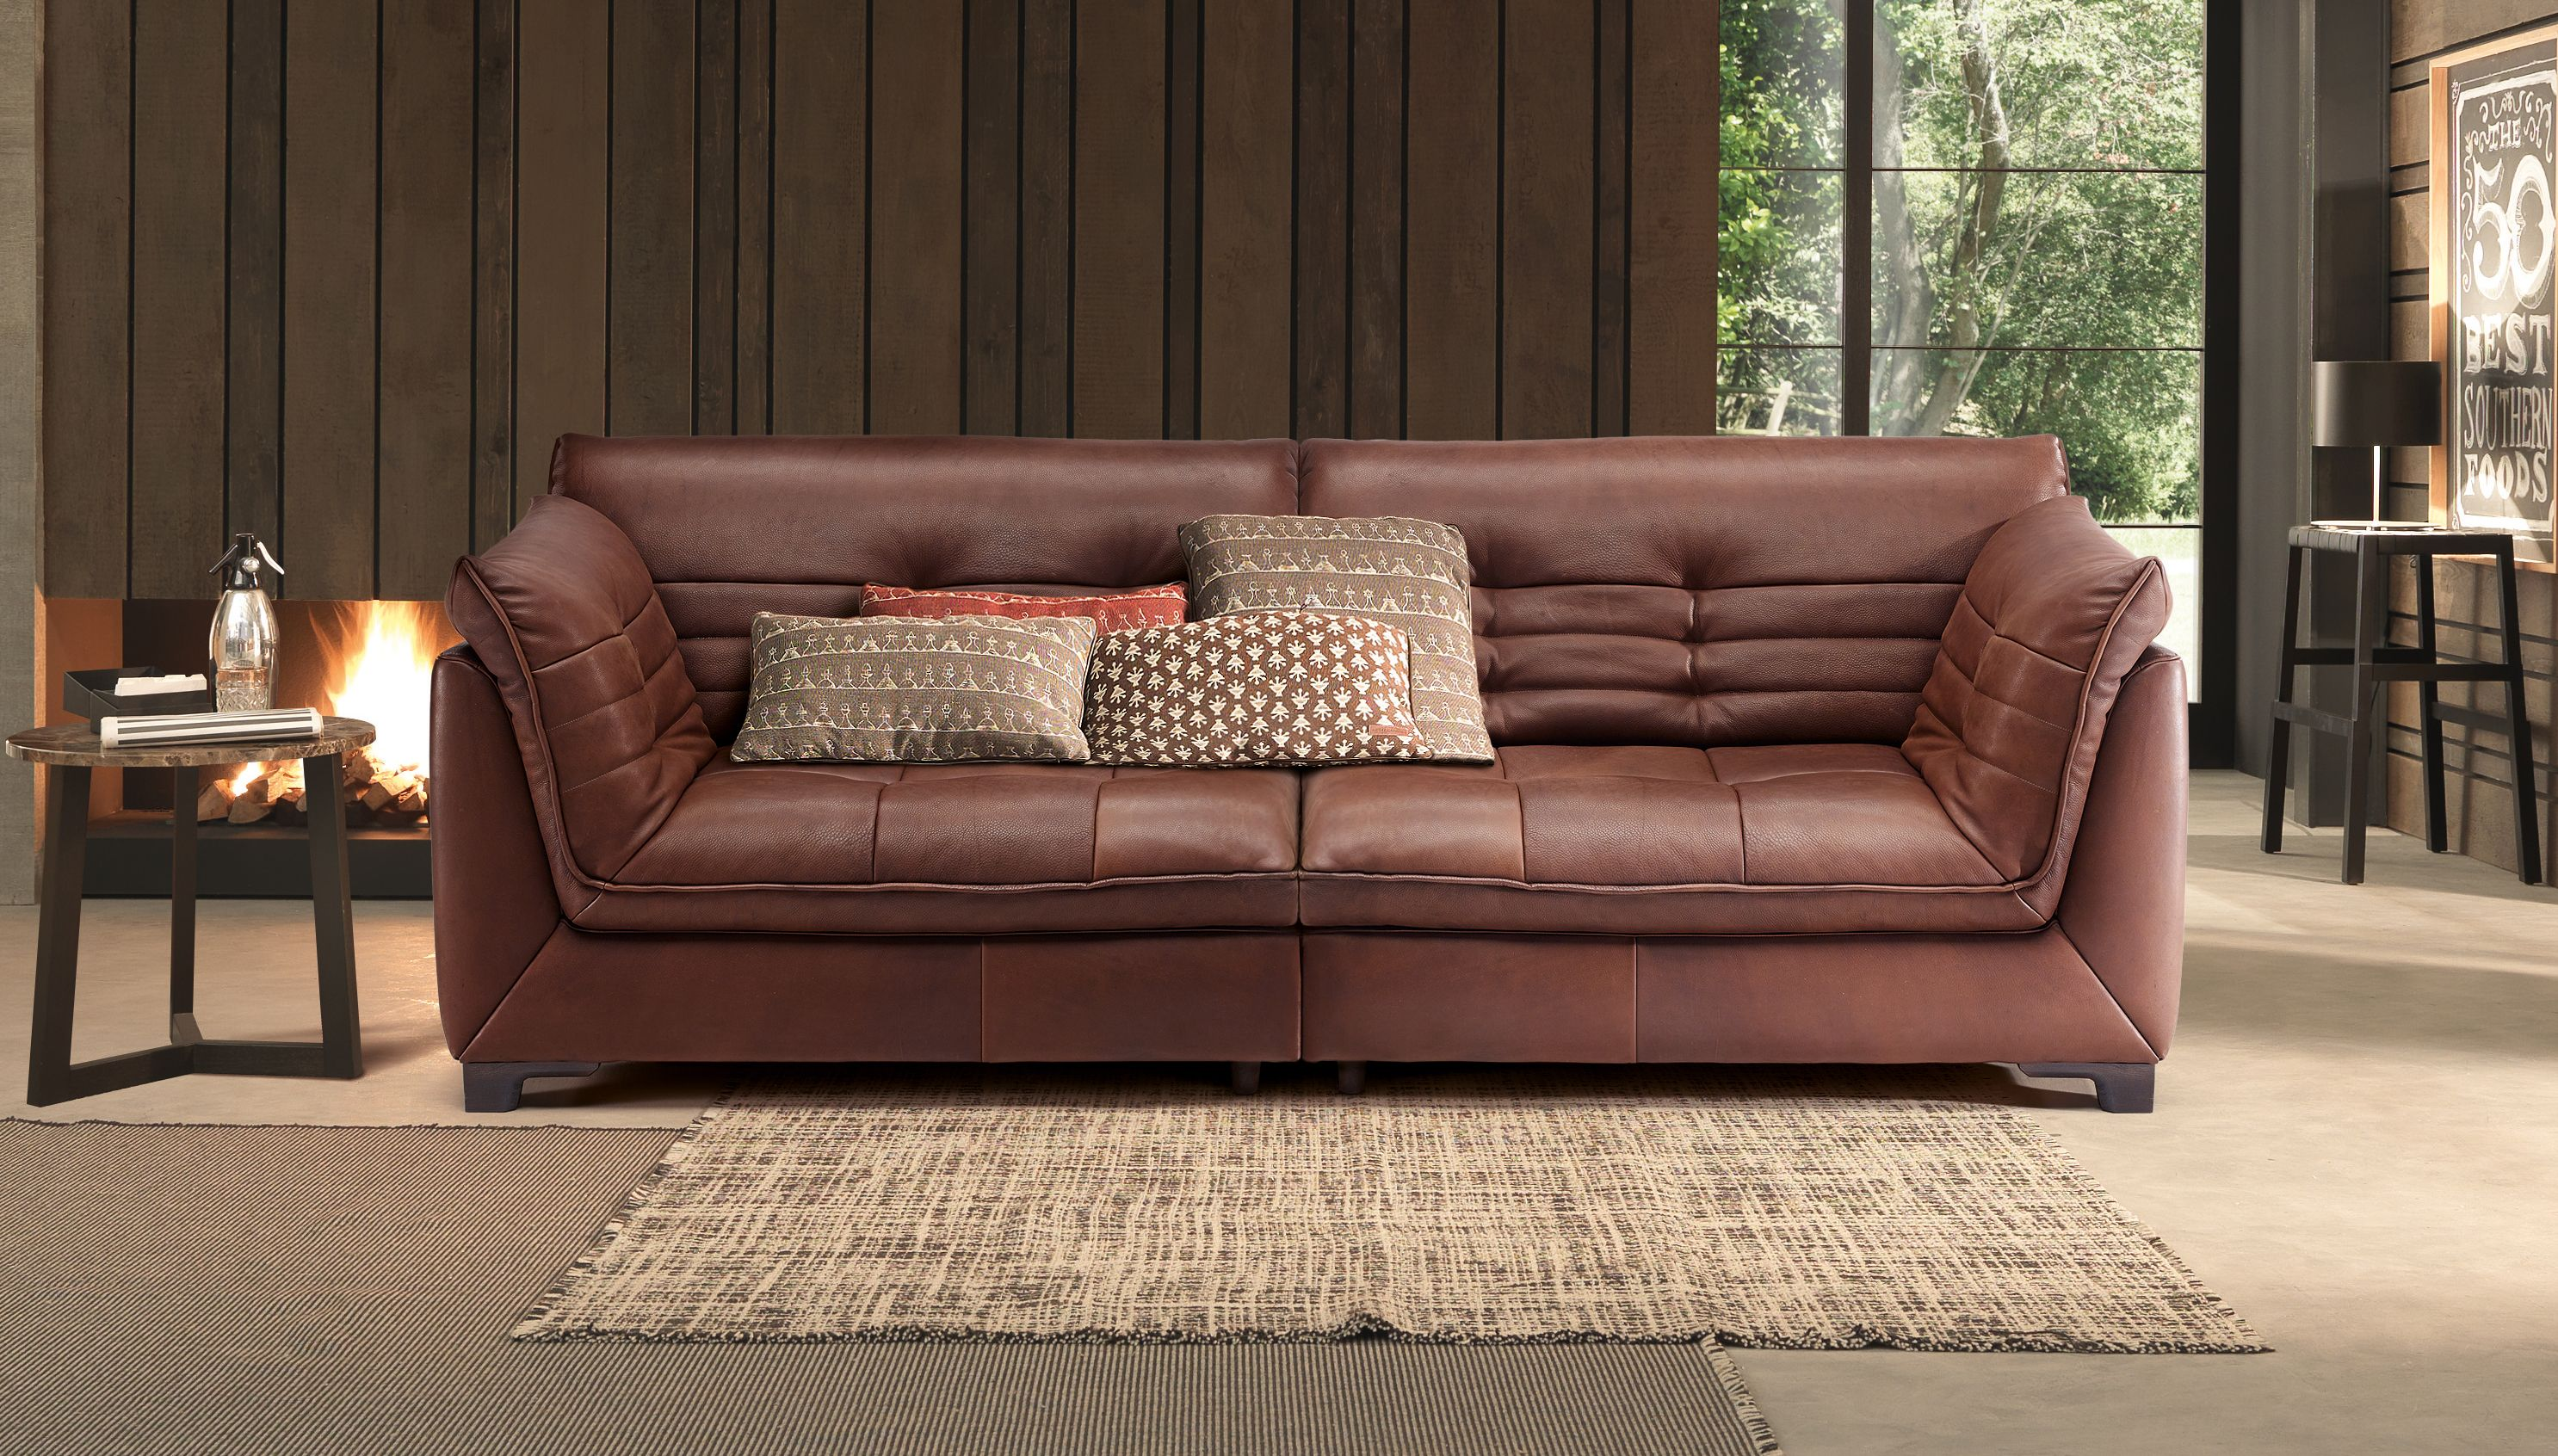 Sofa Covered In Natural Rustic Leather Modern Sofa Set Furniture Leather Sofa Living Room